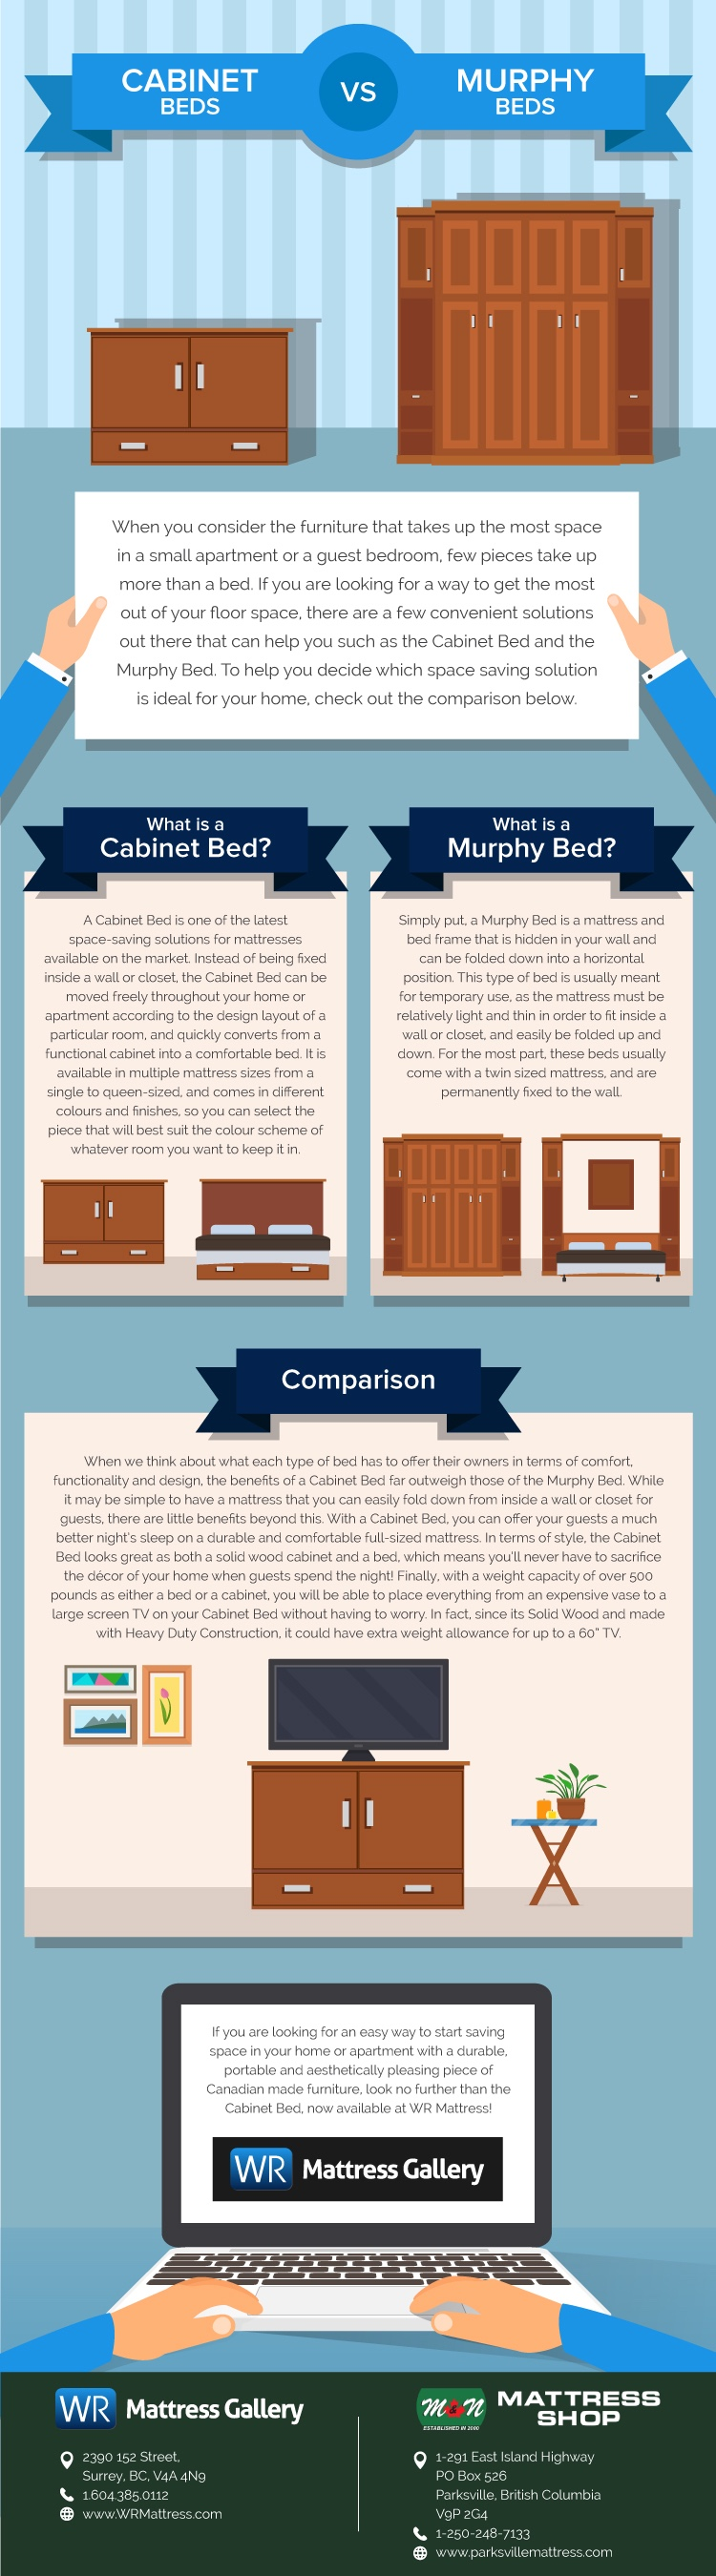 cabinet-bed-vs-murphy-bed